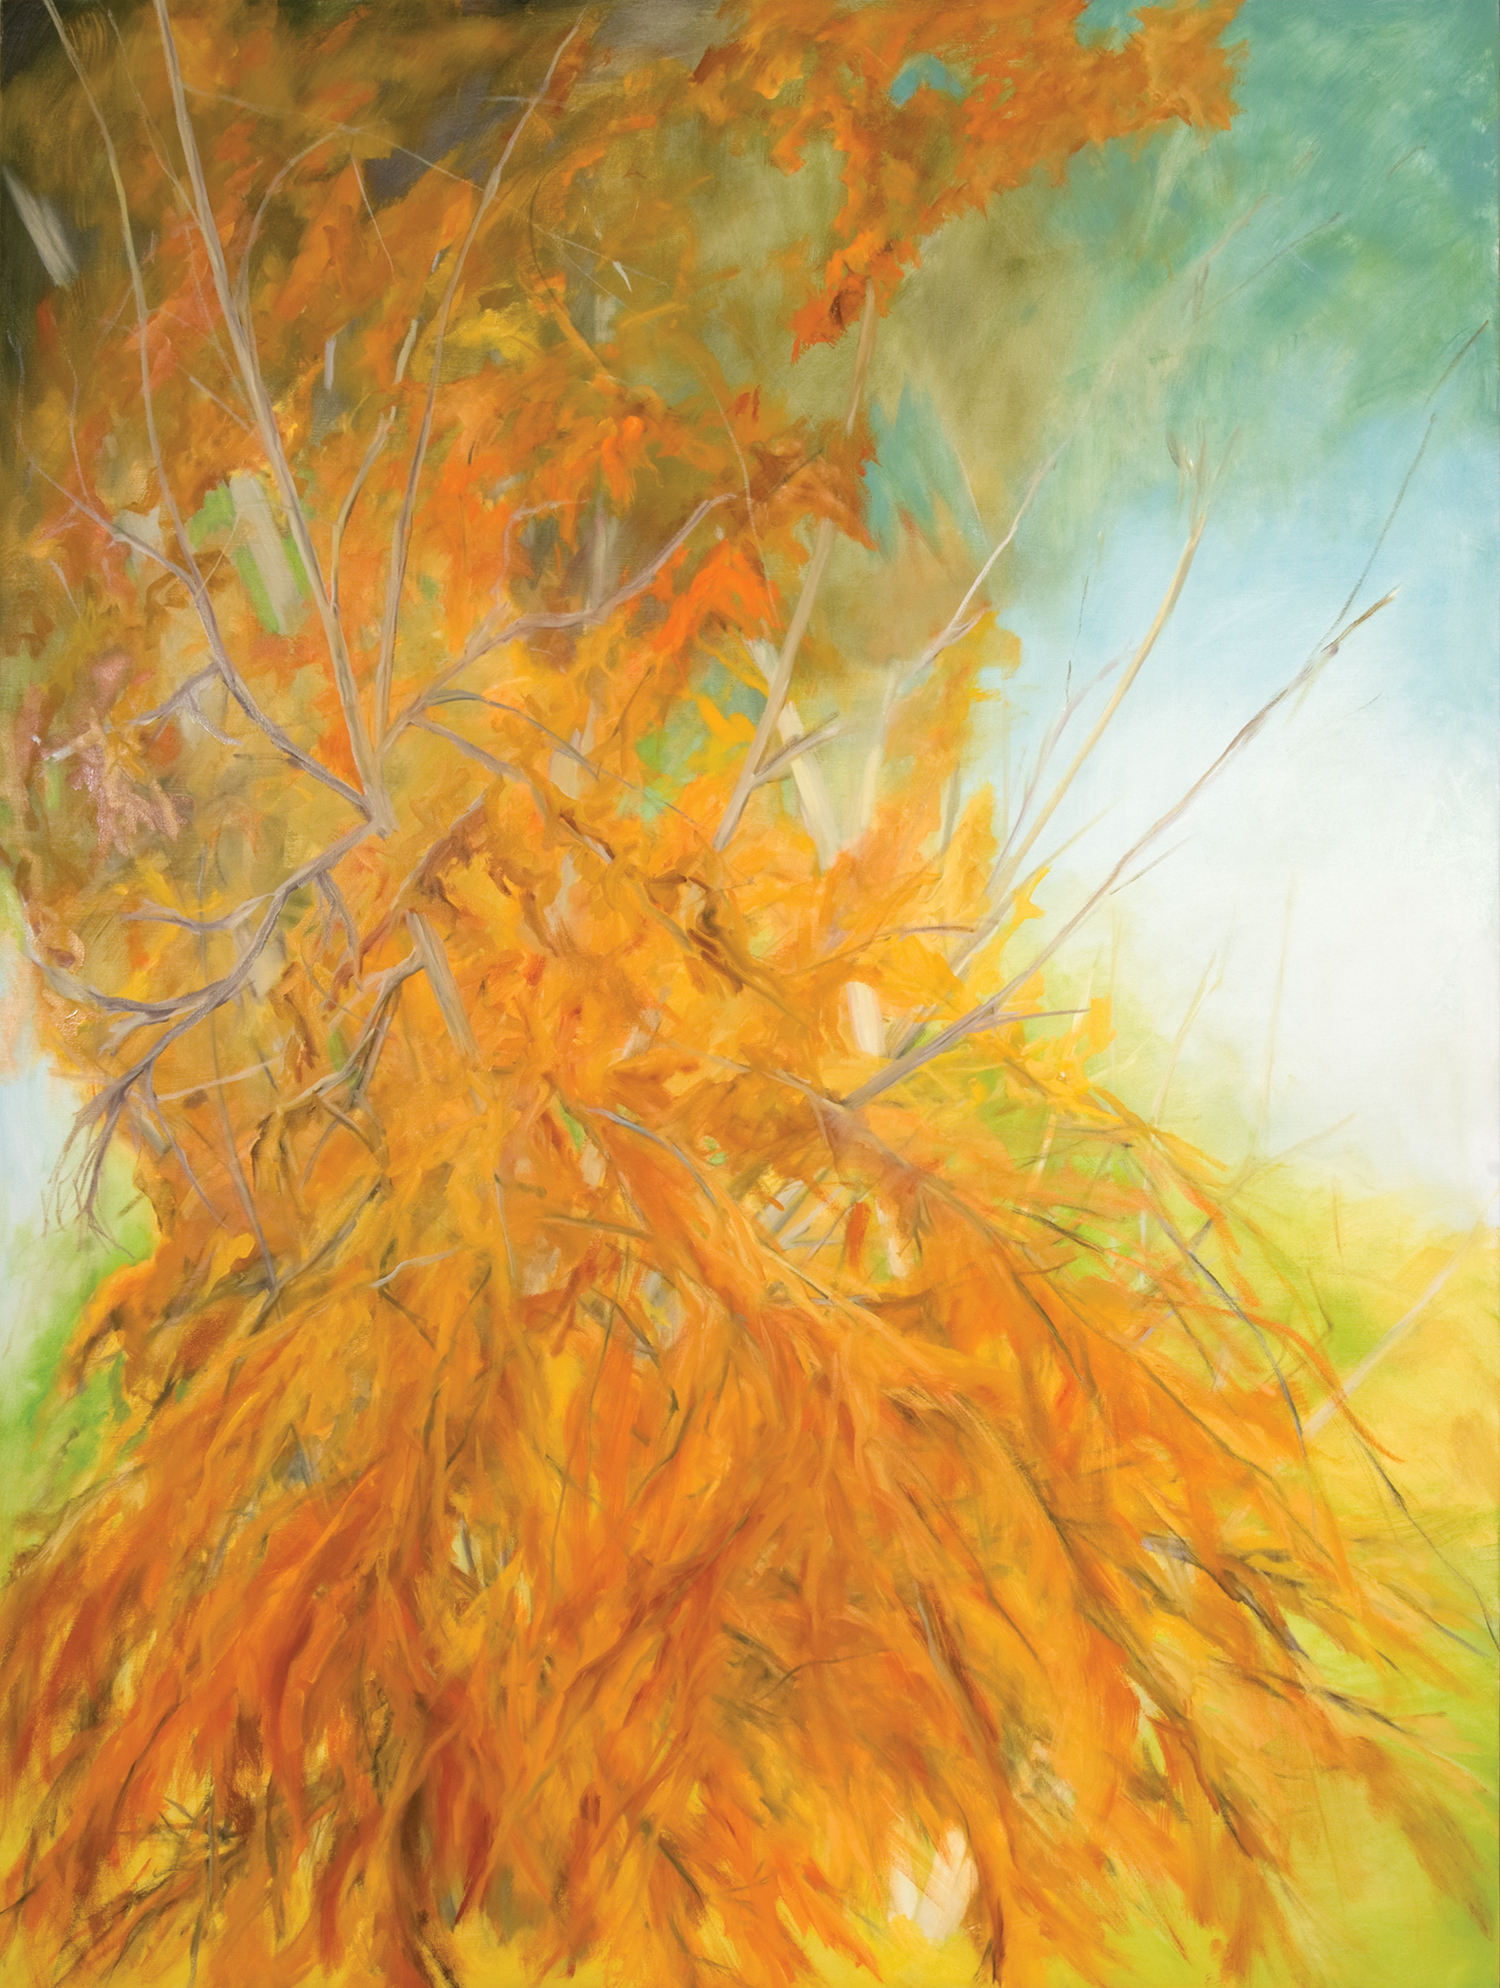 Bramosia , 2009, Oil on canvas 96 x 72 inches (Private Collection-Fredericton, NB)